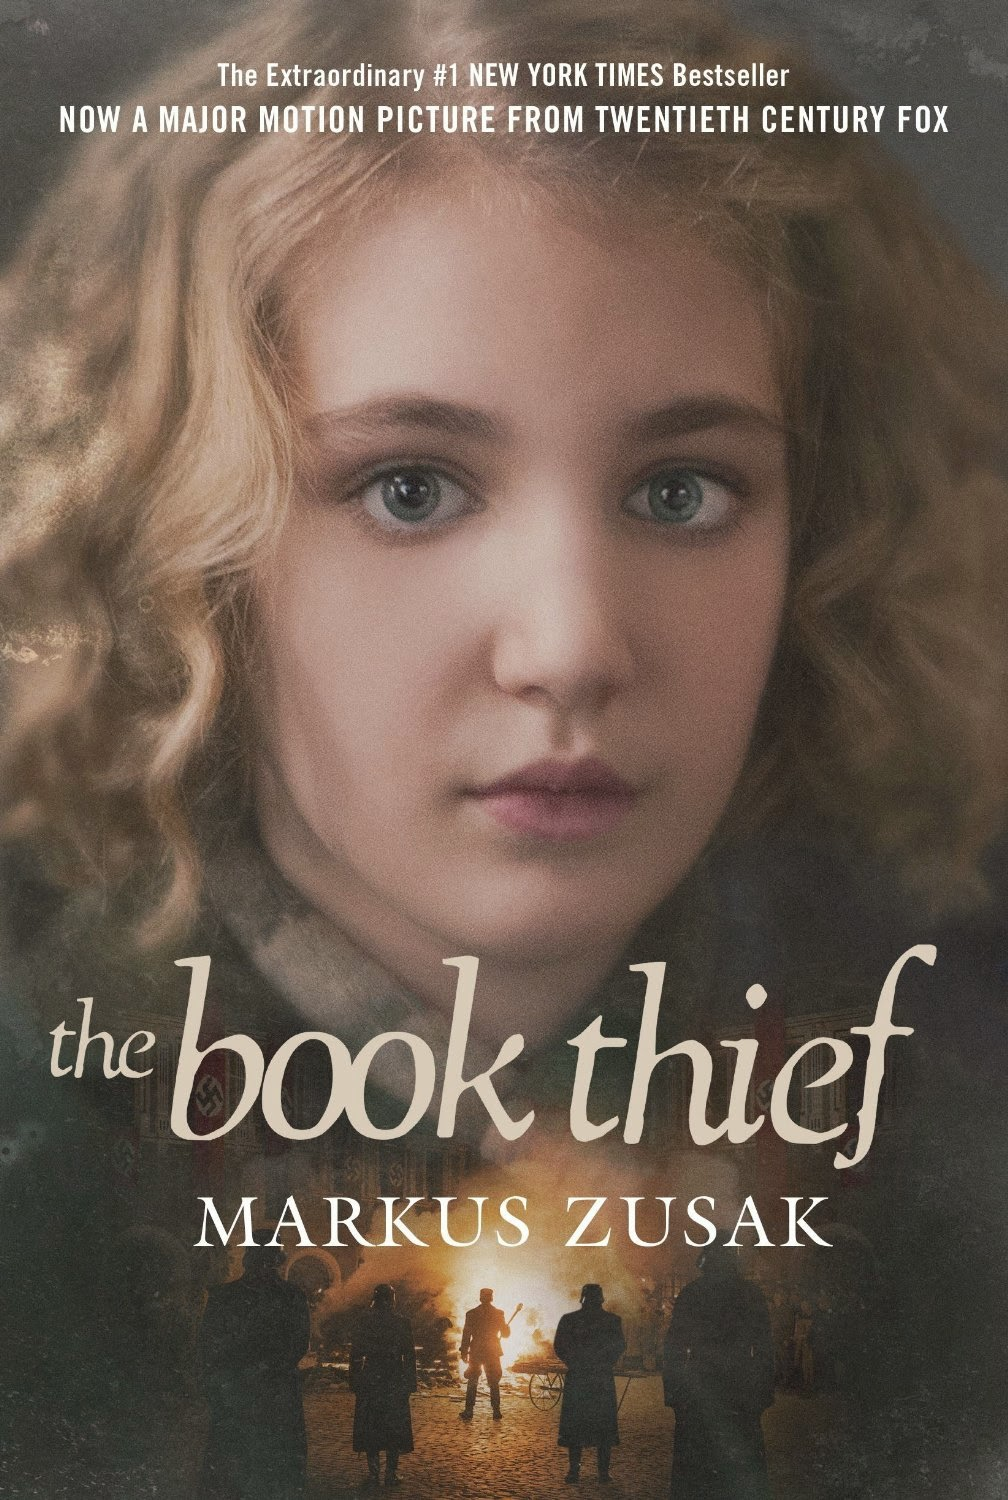 sharon s love of books the book thief by markus zusak the book the book thief by markus zusak the book to movie now available on blu ray and dvd